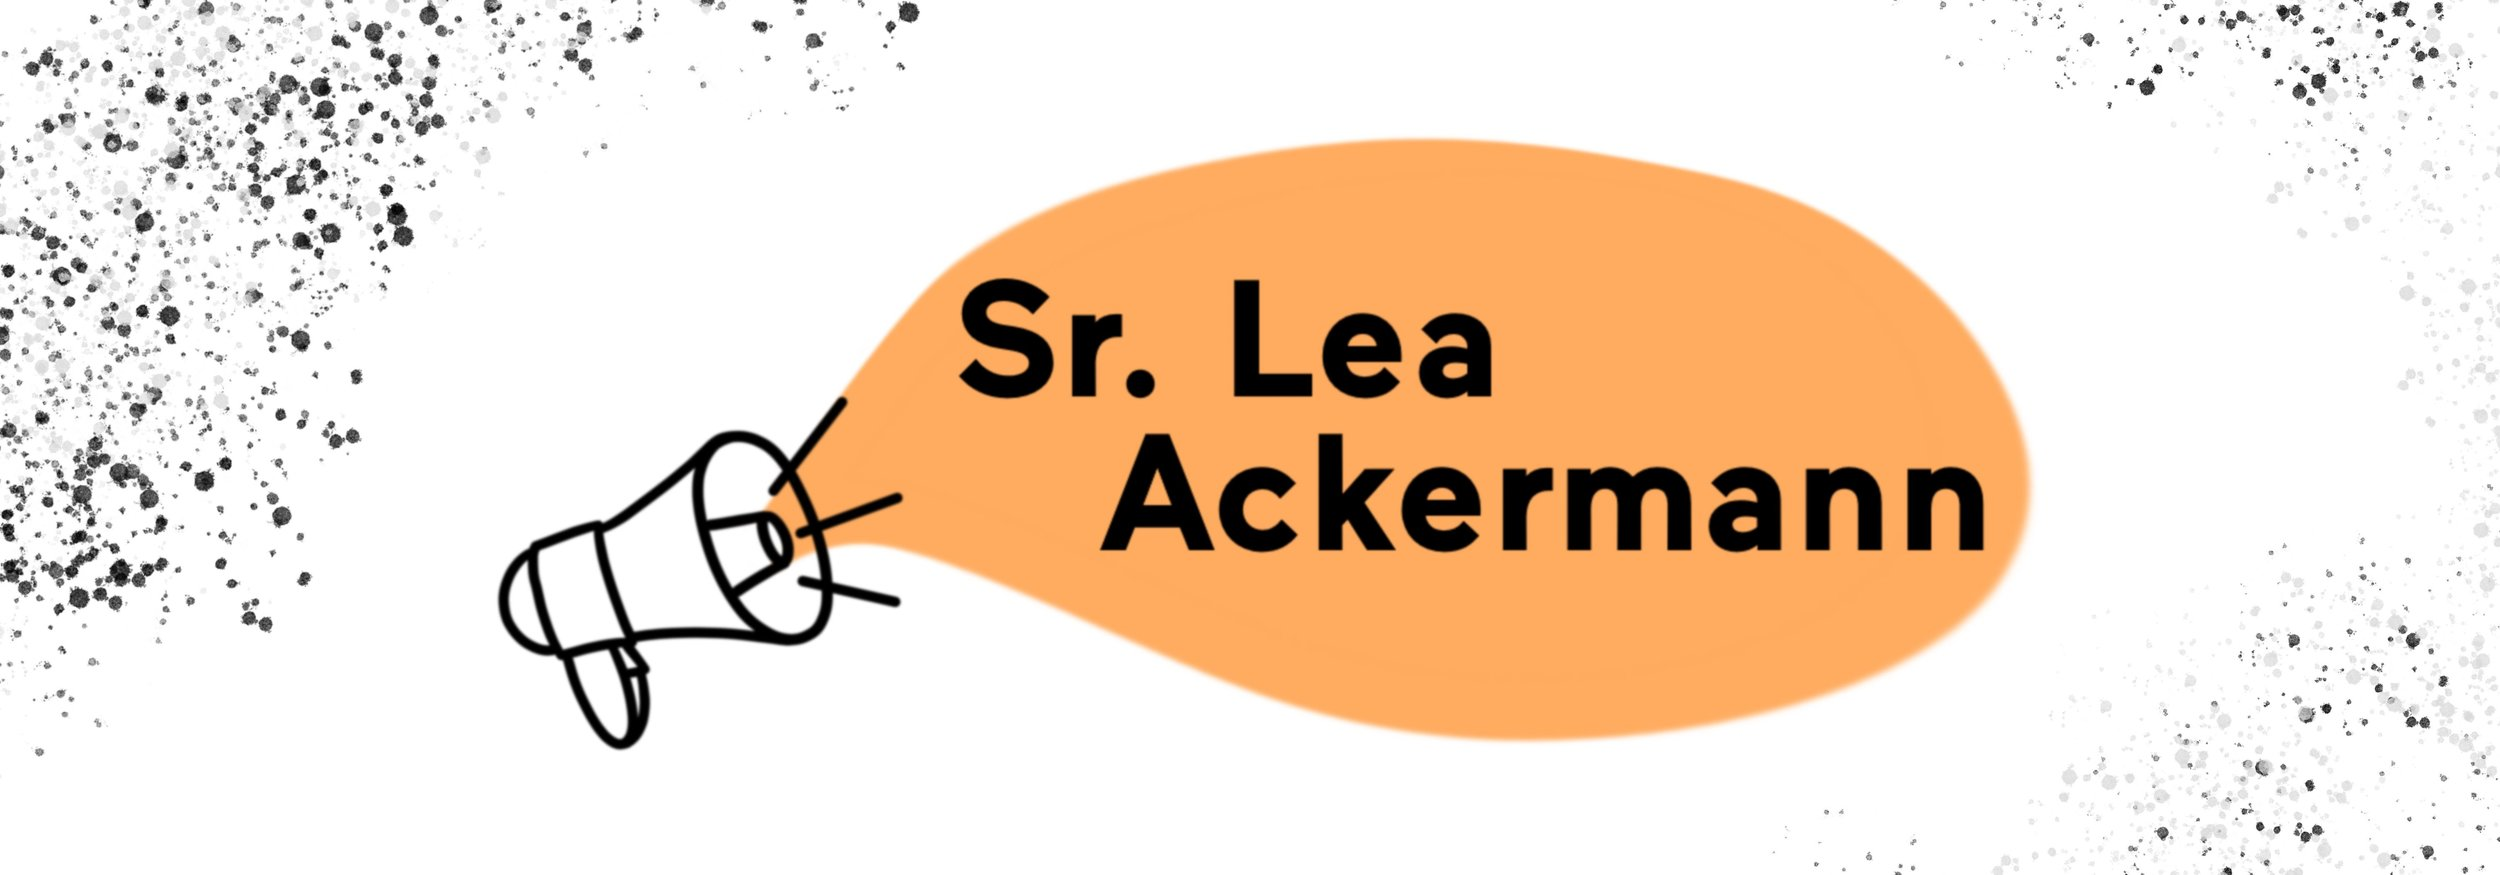 Sr._Lea_Ackermann_Website_Banner.jpg